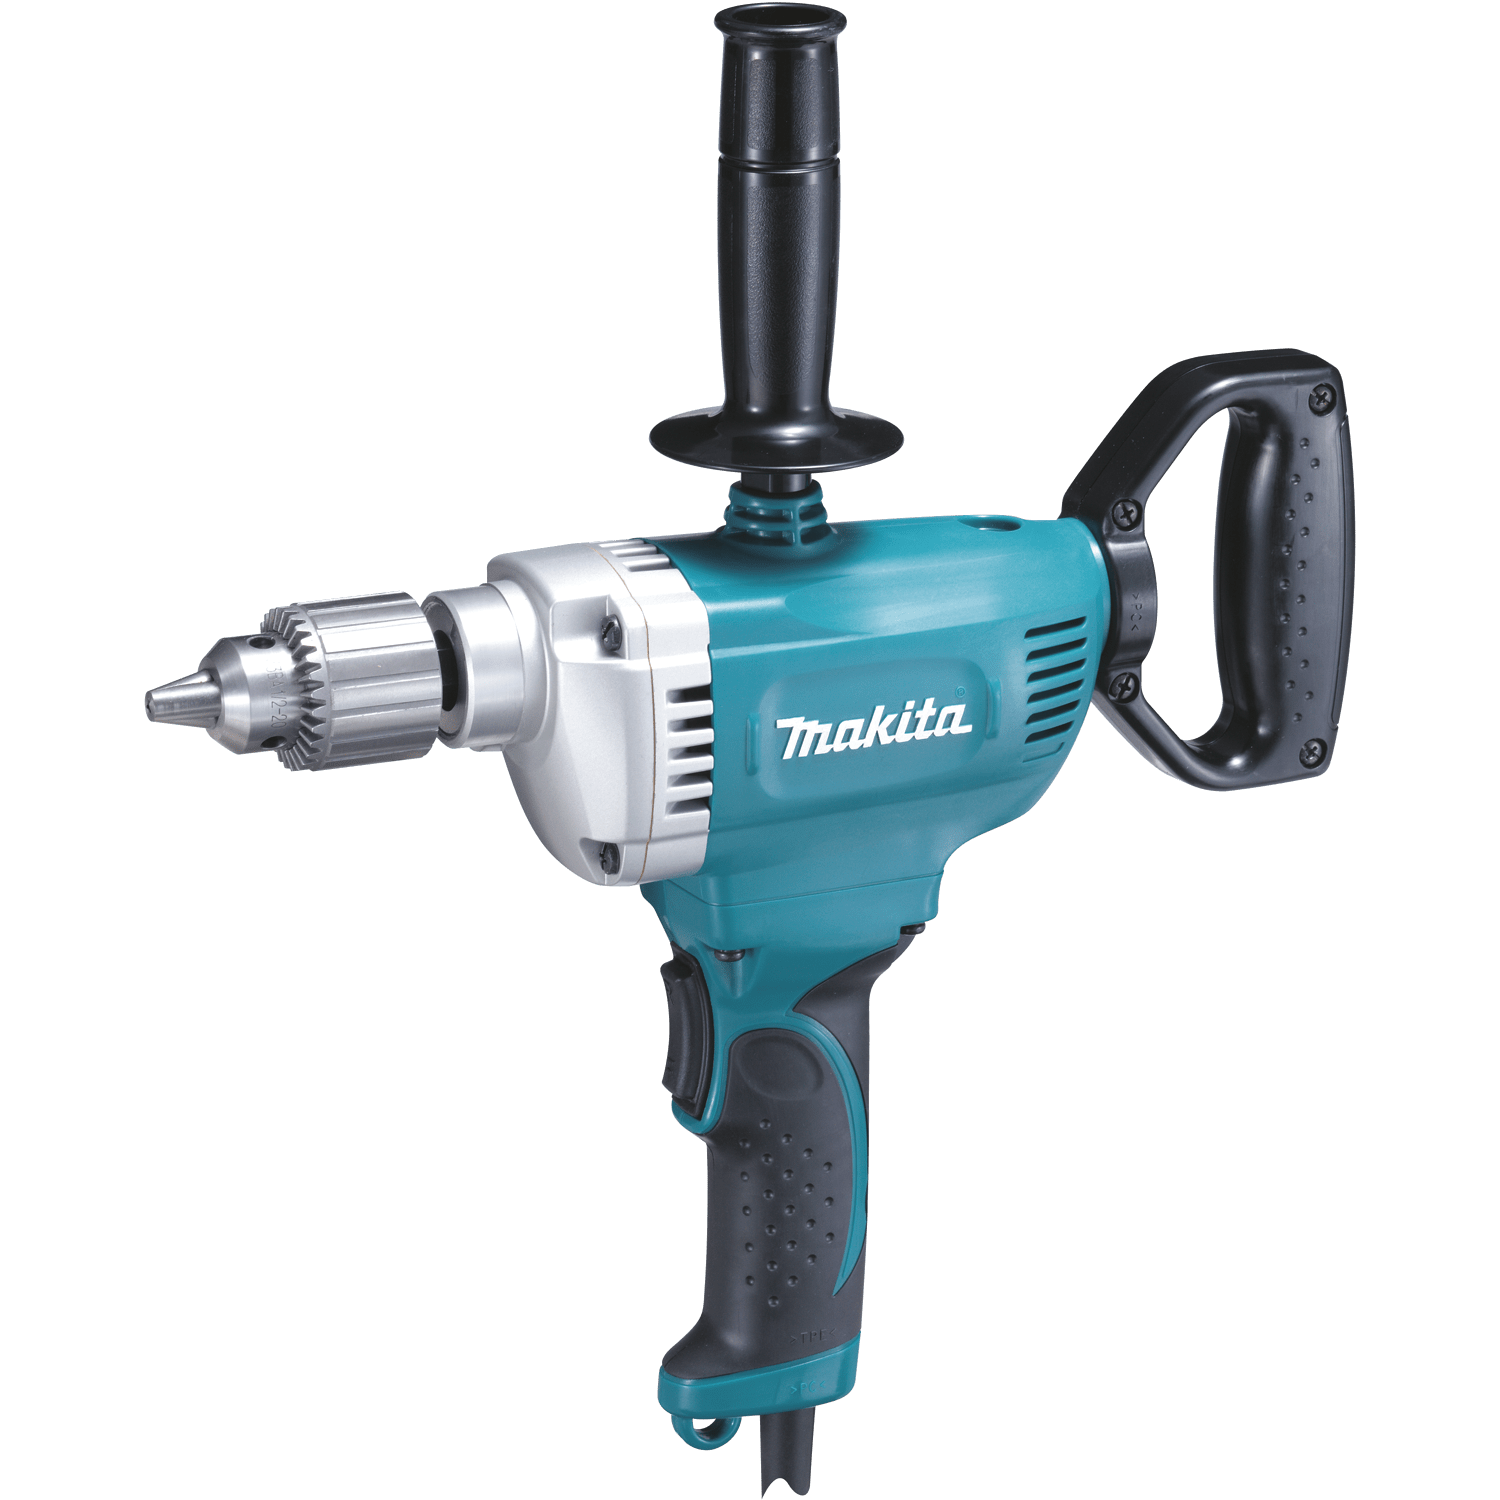 Best Corded Drill For Woodworking